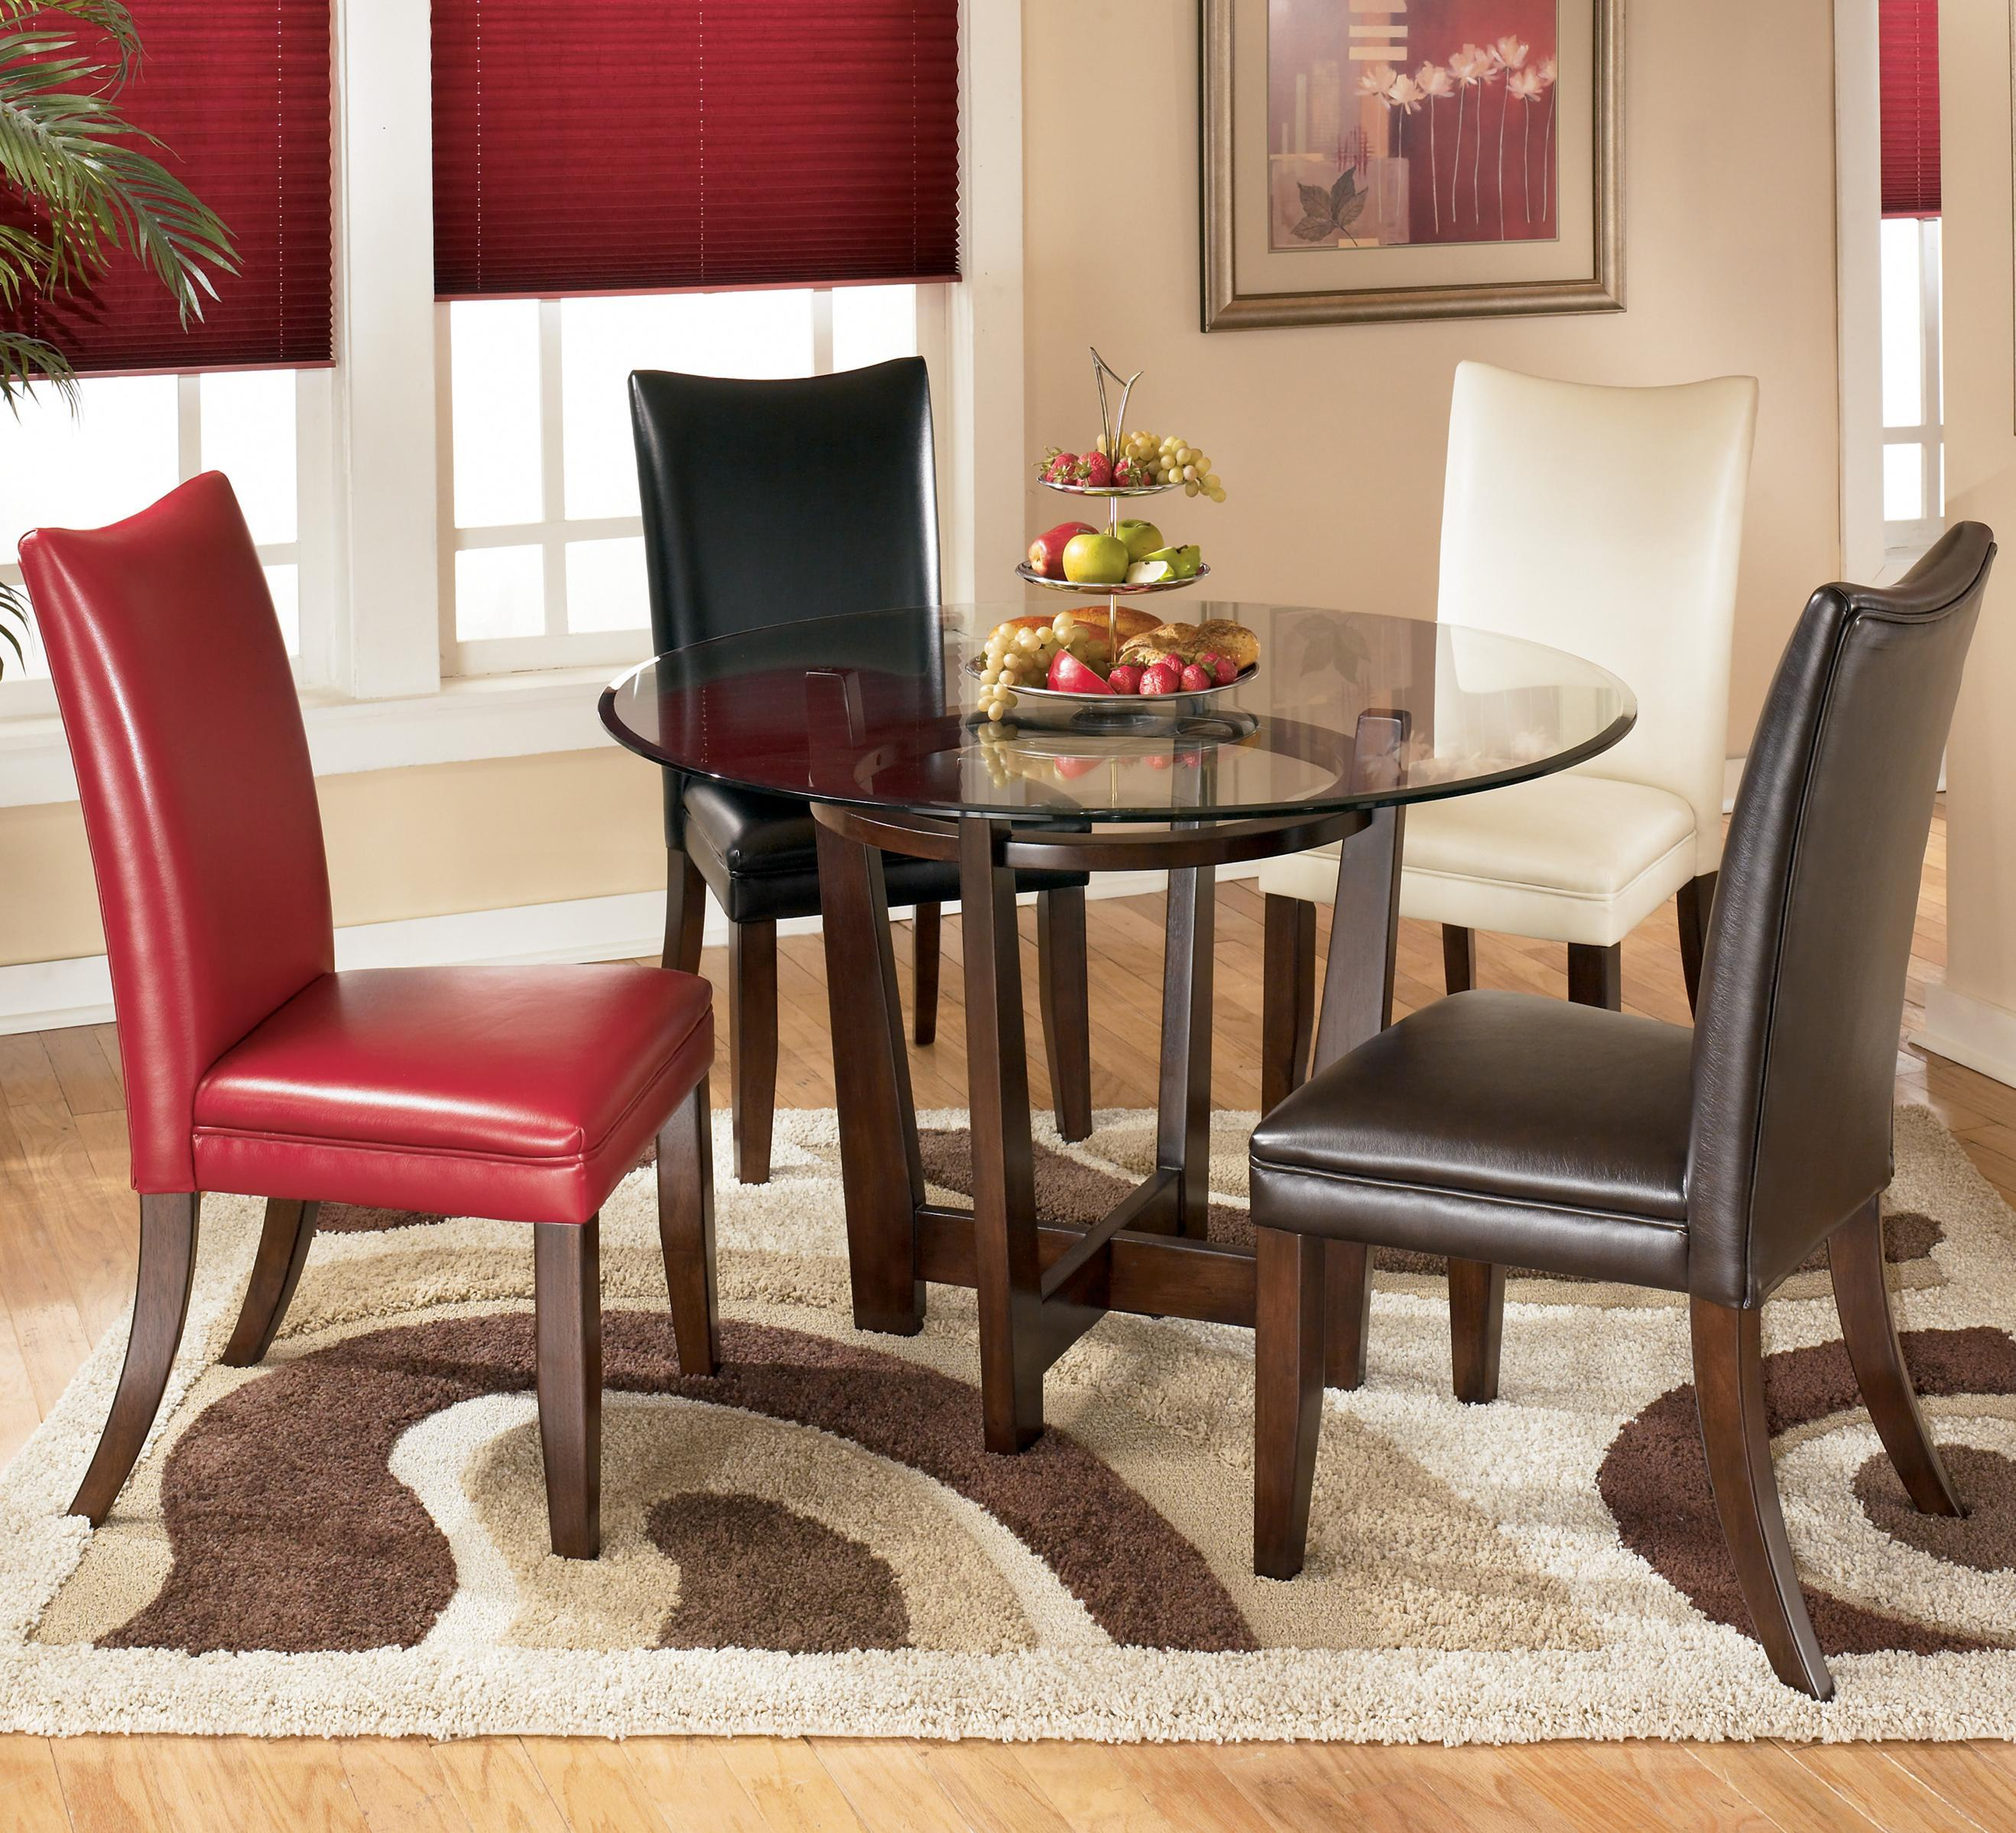 5 Piece Round Dining Table Set with 4 Different Color